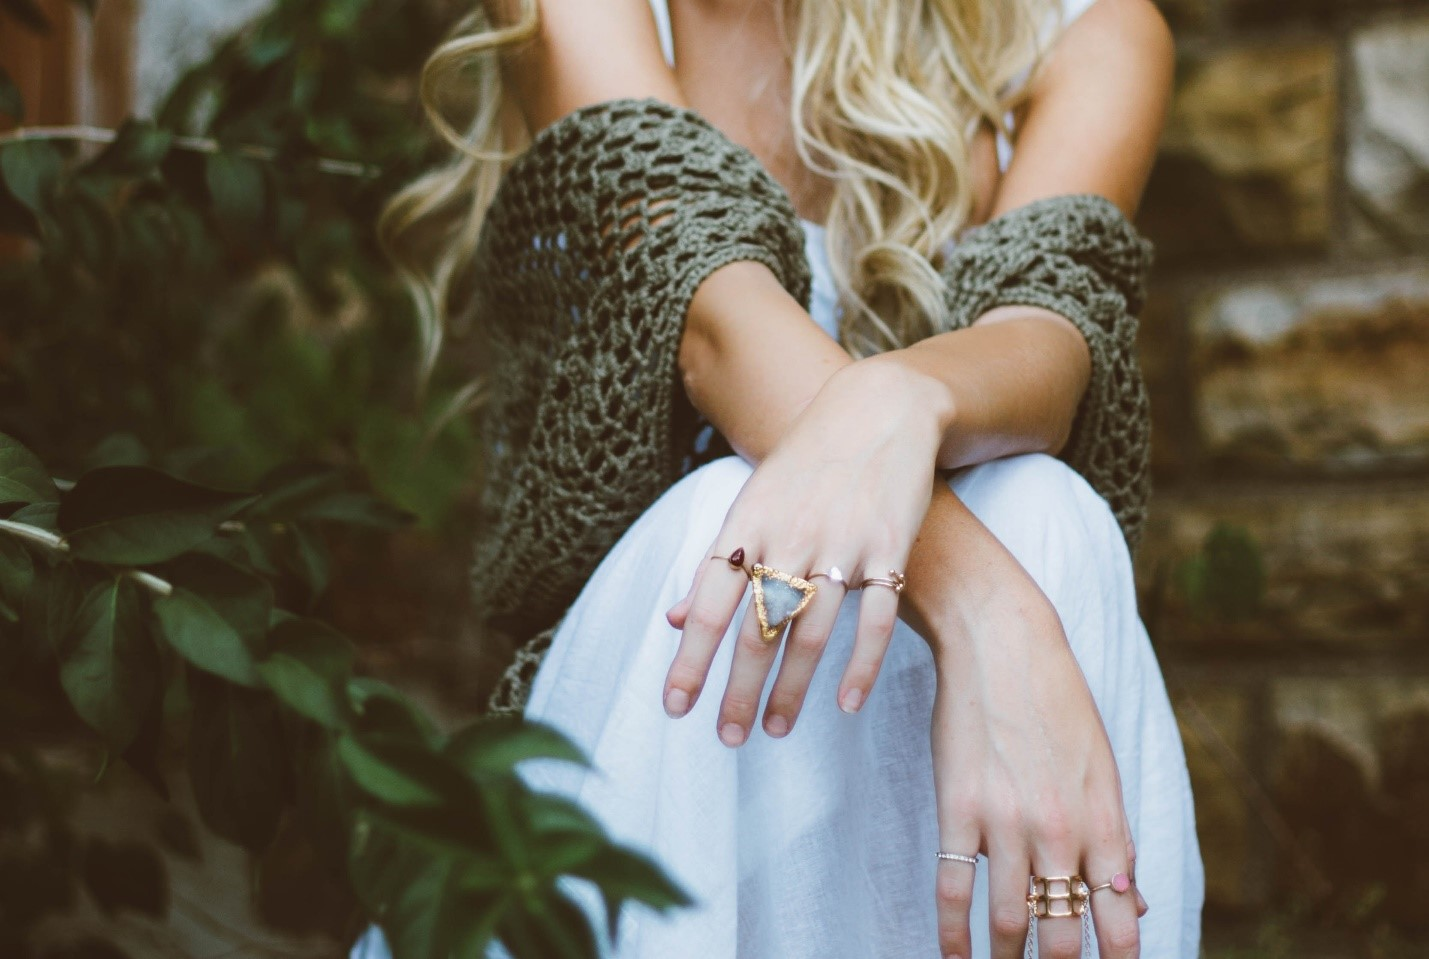 4 Jewelry Trends in 2020 You Won't Want to Miss